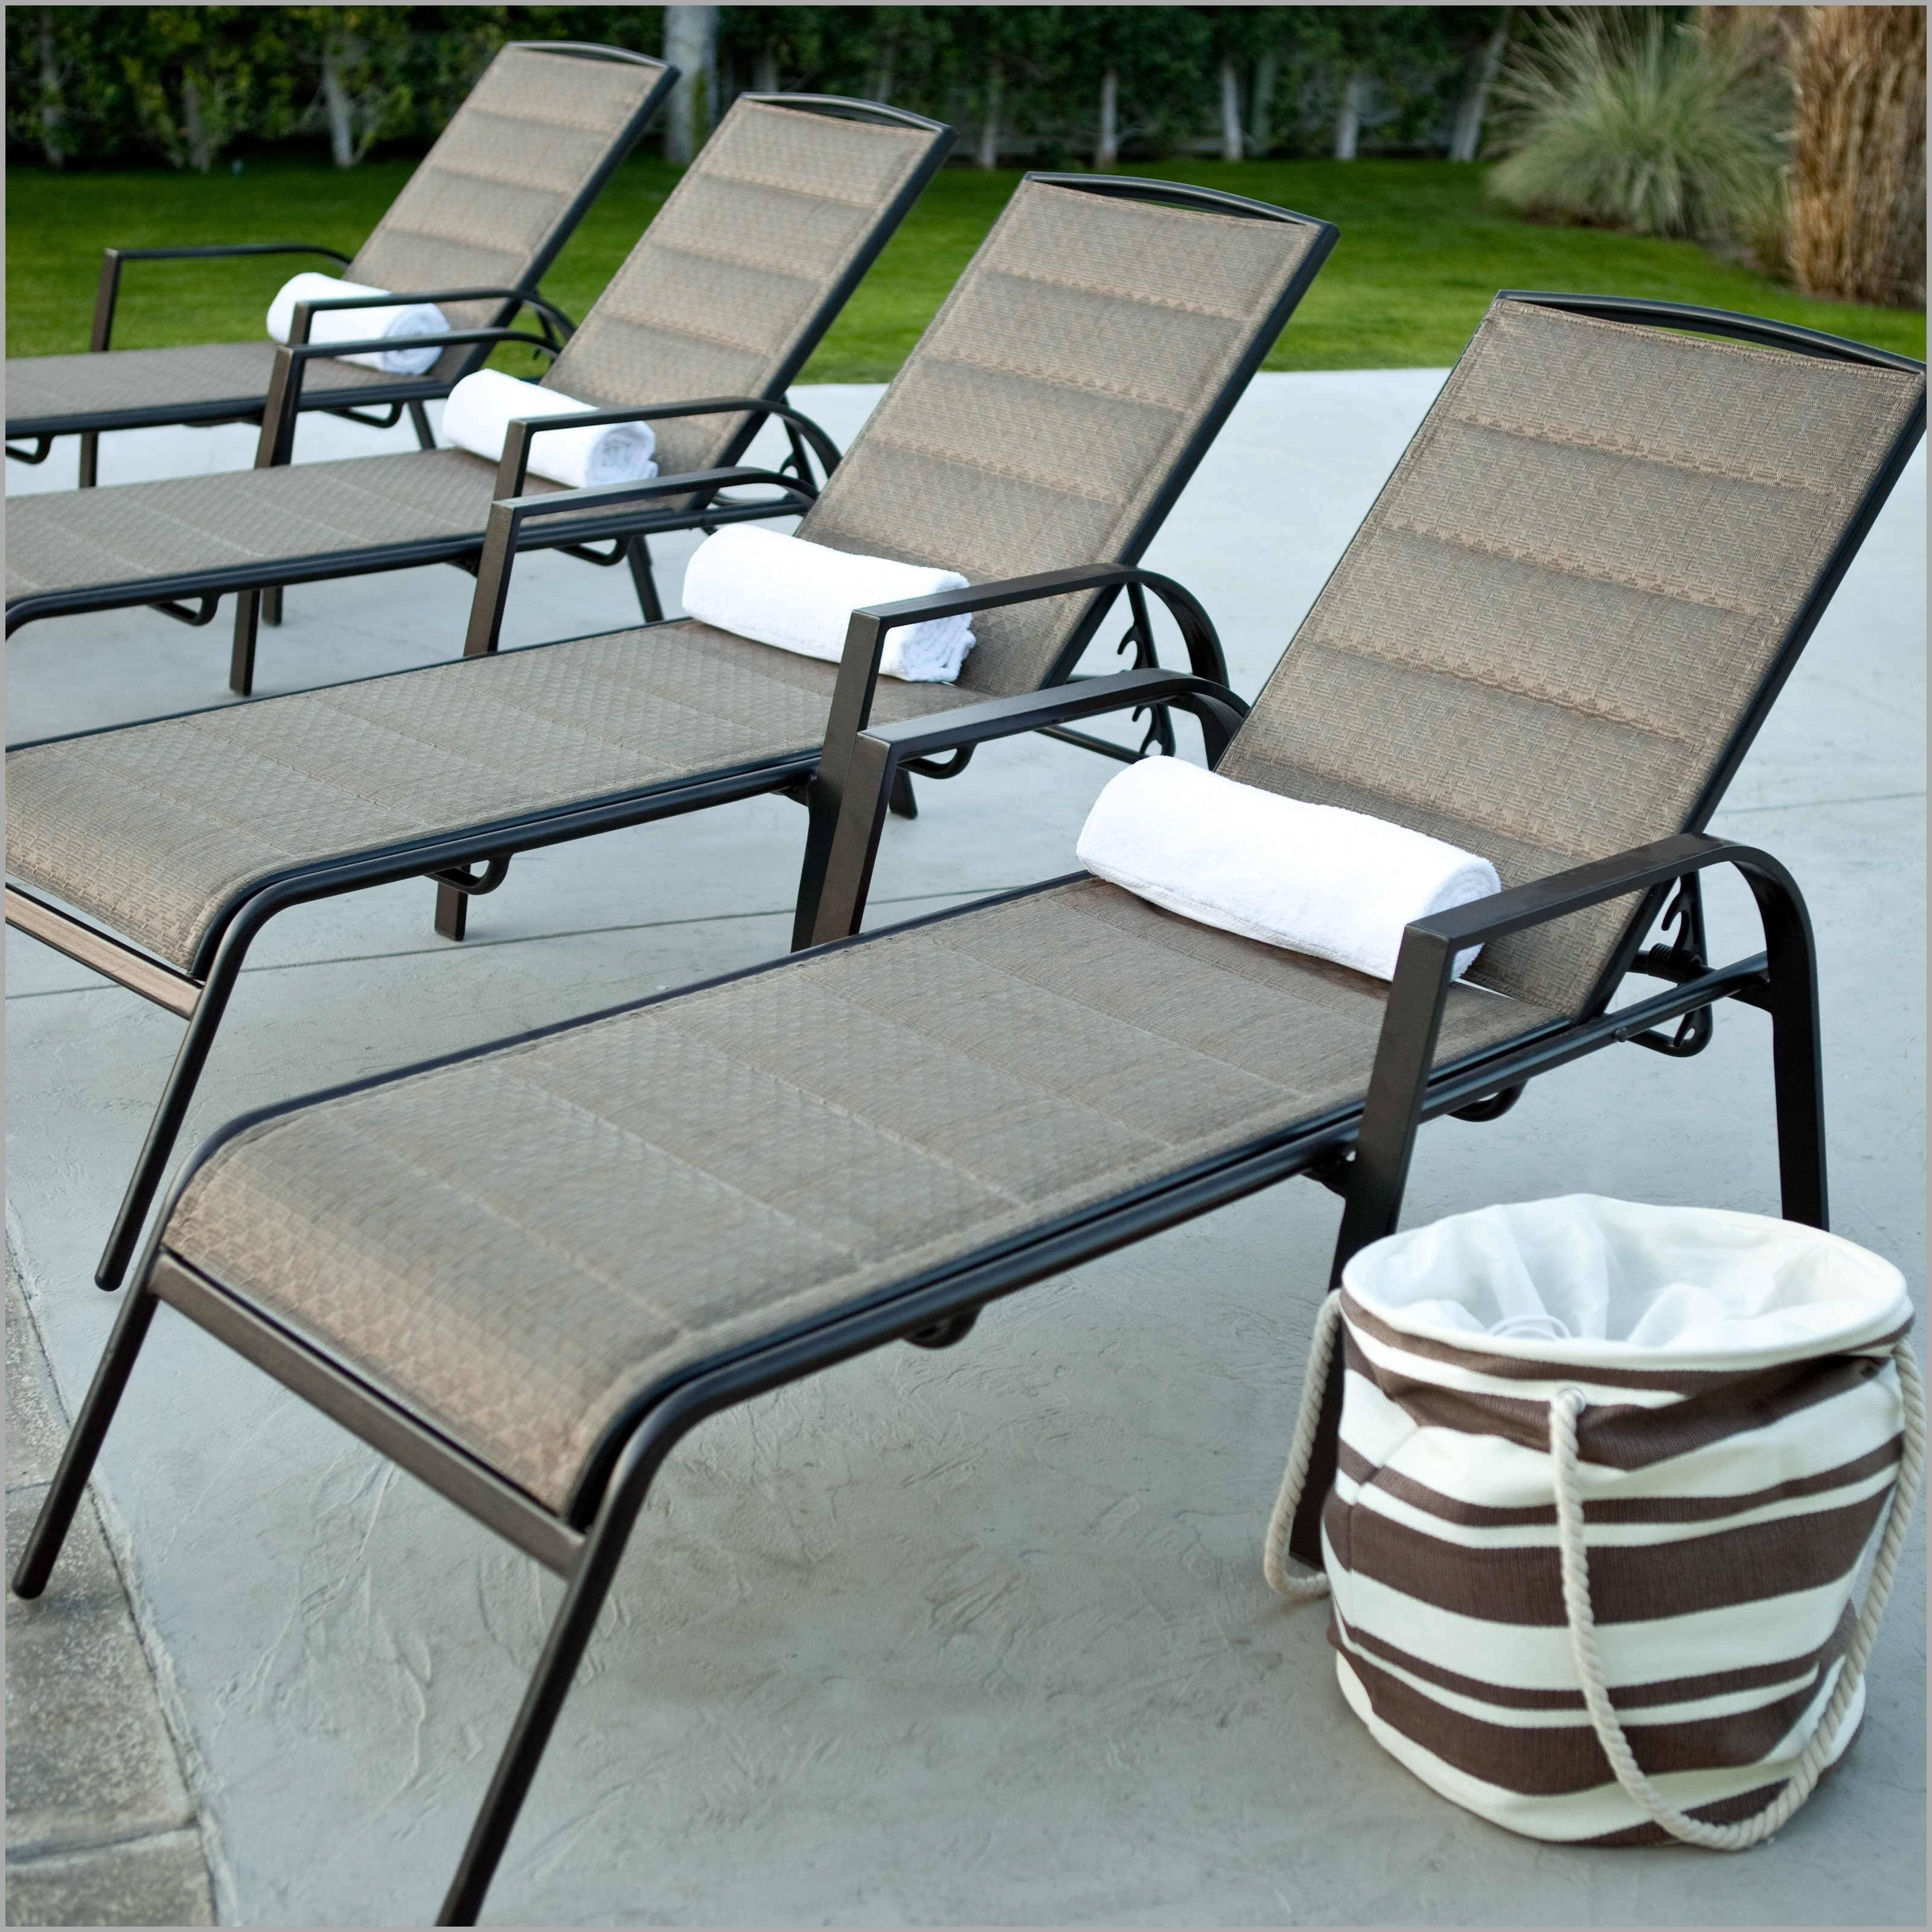 Extraordinary Pool Chaise Lounge Chairs Decorative 600357 – Chair Inside Well Known Martha Stewart Outdoor Chaise Lounge Chairs (View 5 of 15)